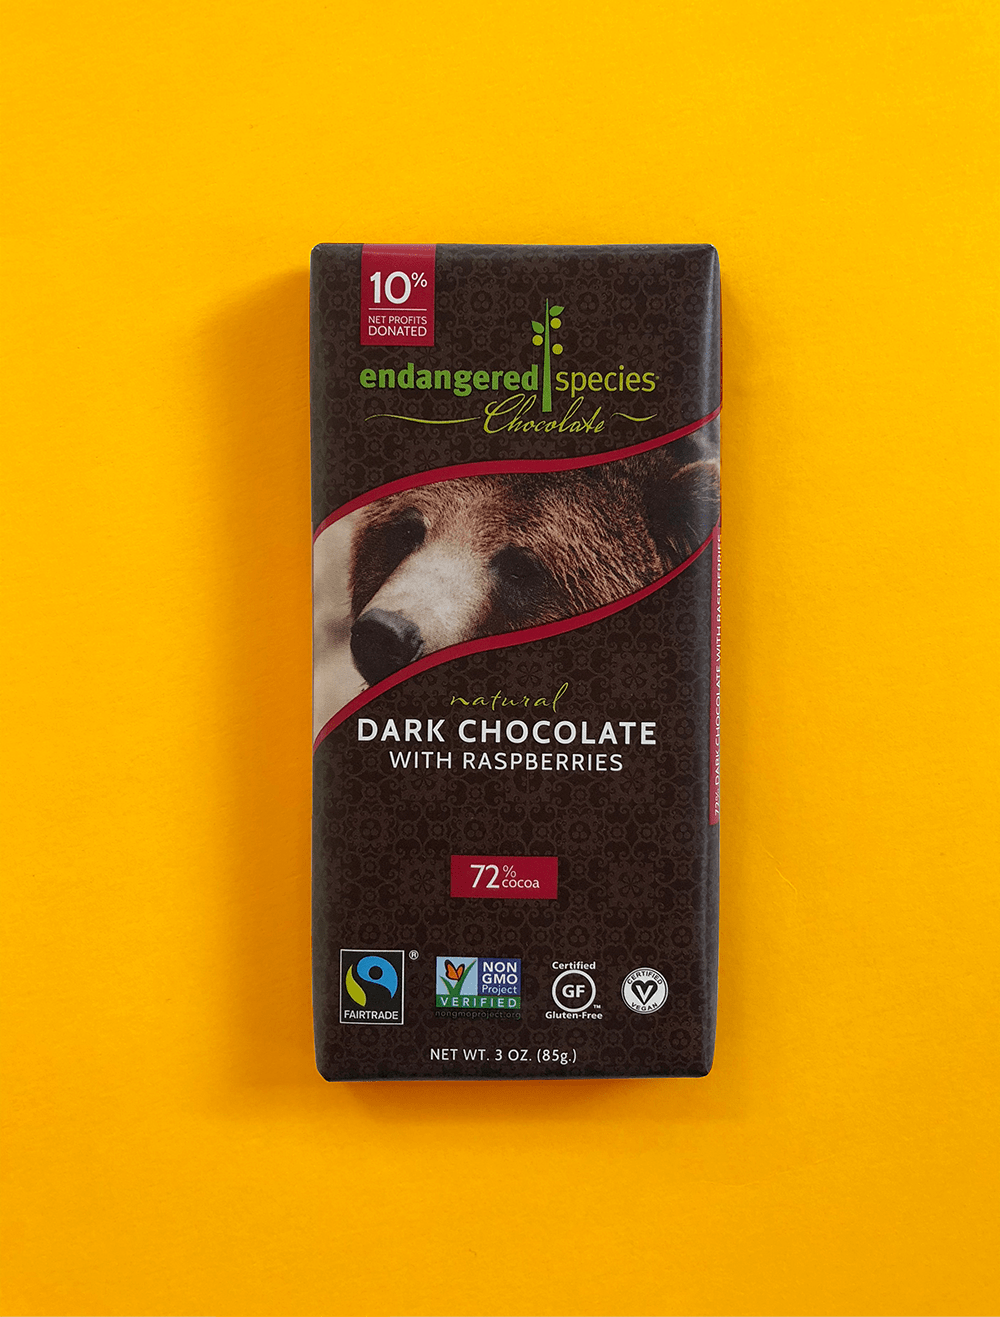 dark-chocolate-raspberries-grizzly-bear-endangered-species